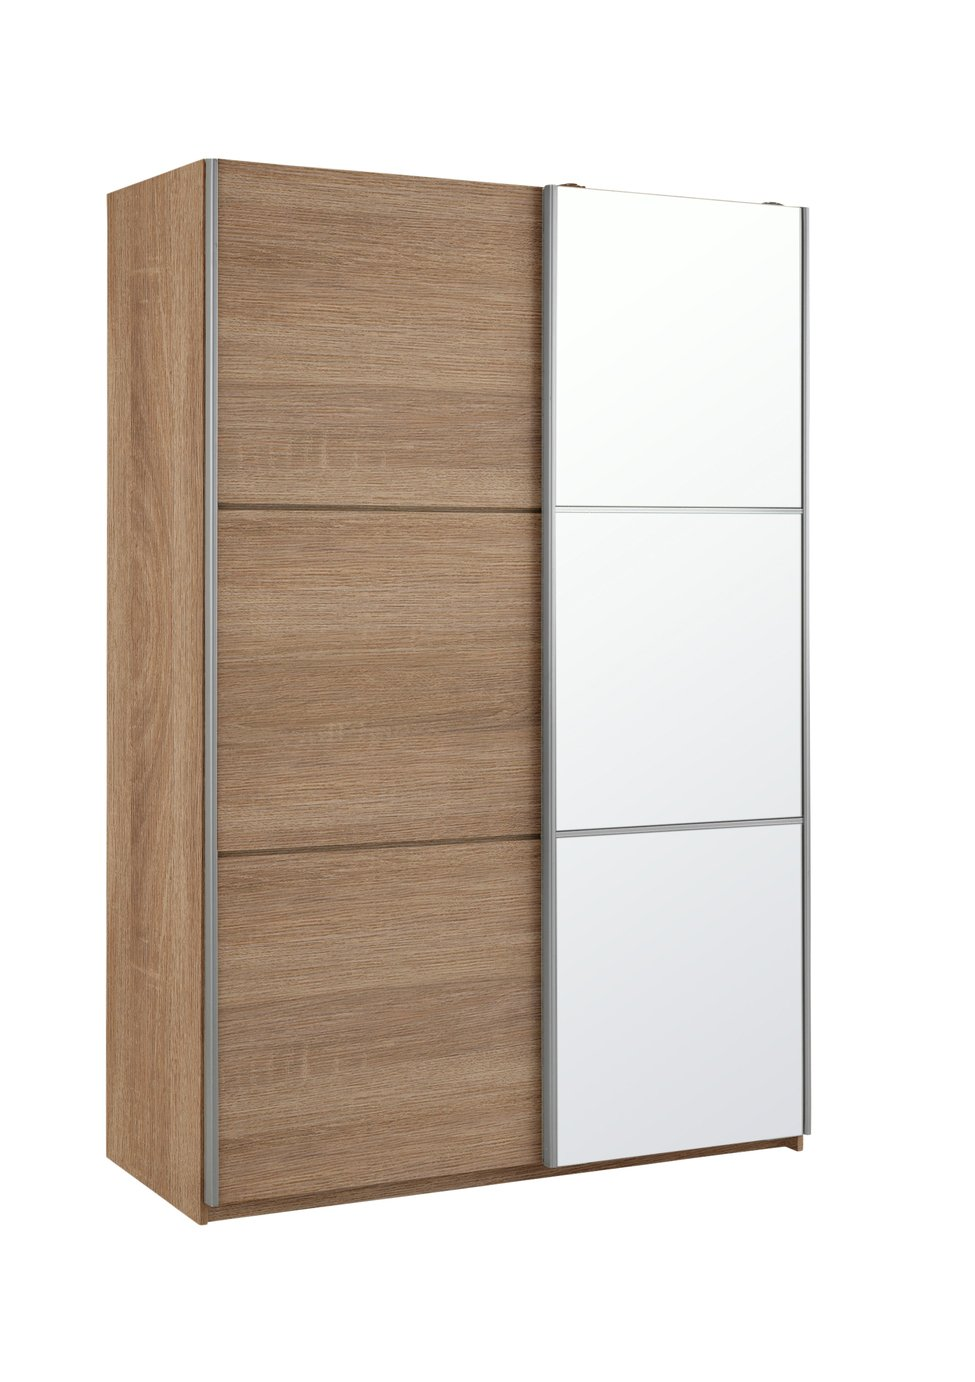 Argos Home Holsted Medium Sliding Wardrobe